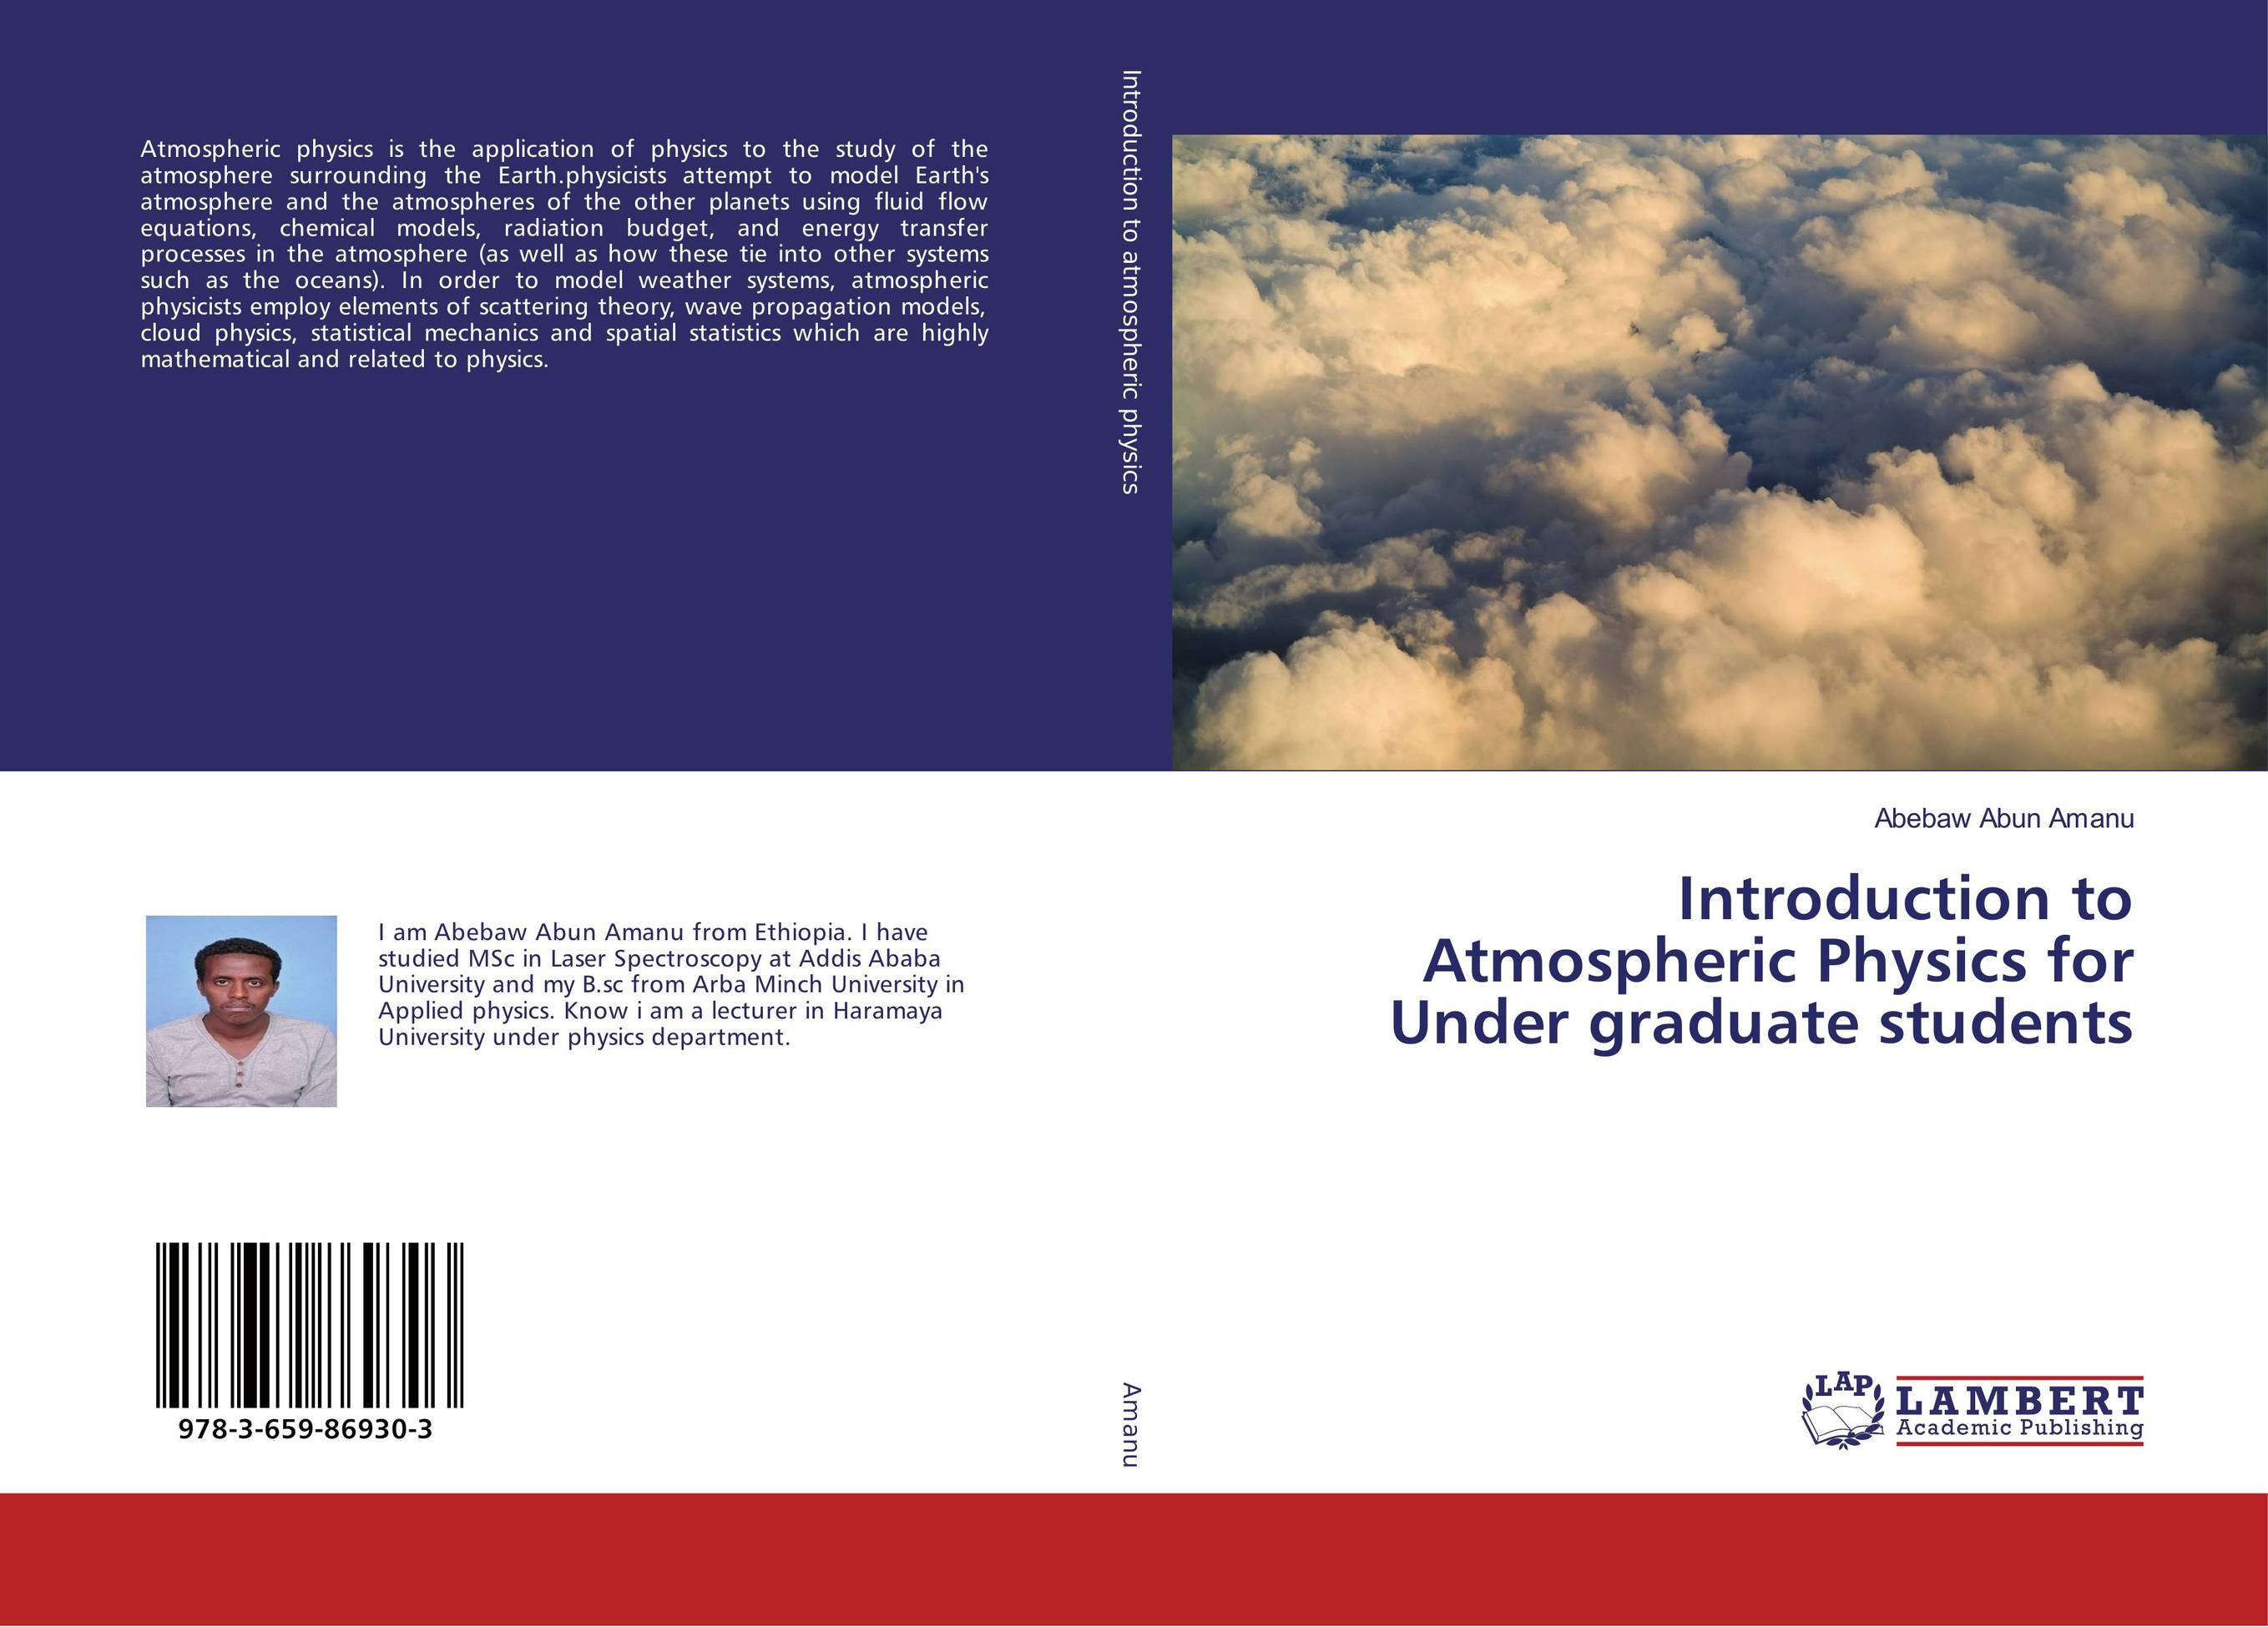 Introduction to Atmospheric Physics for Under graduate students paul g hoel introduction to mathematical statistics